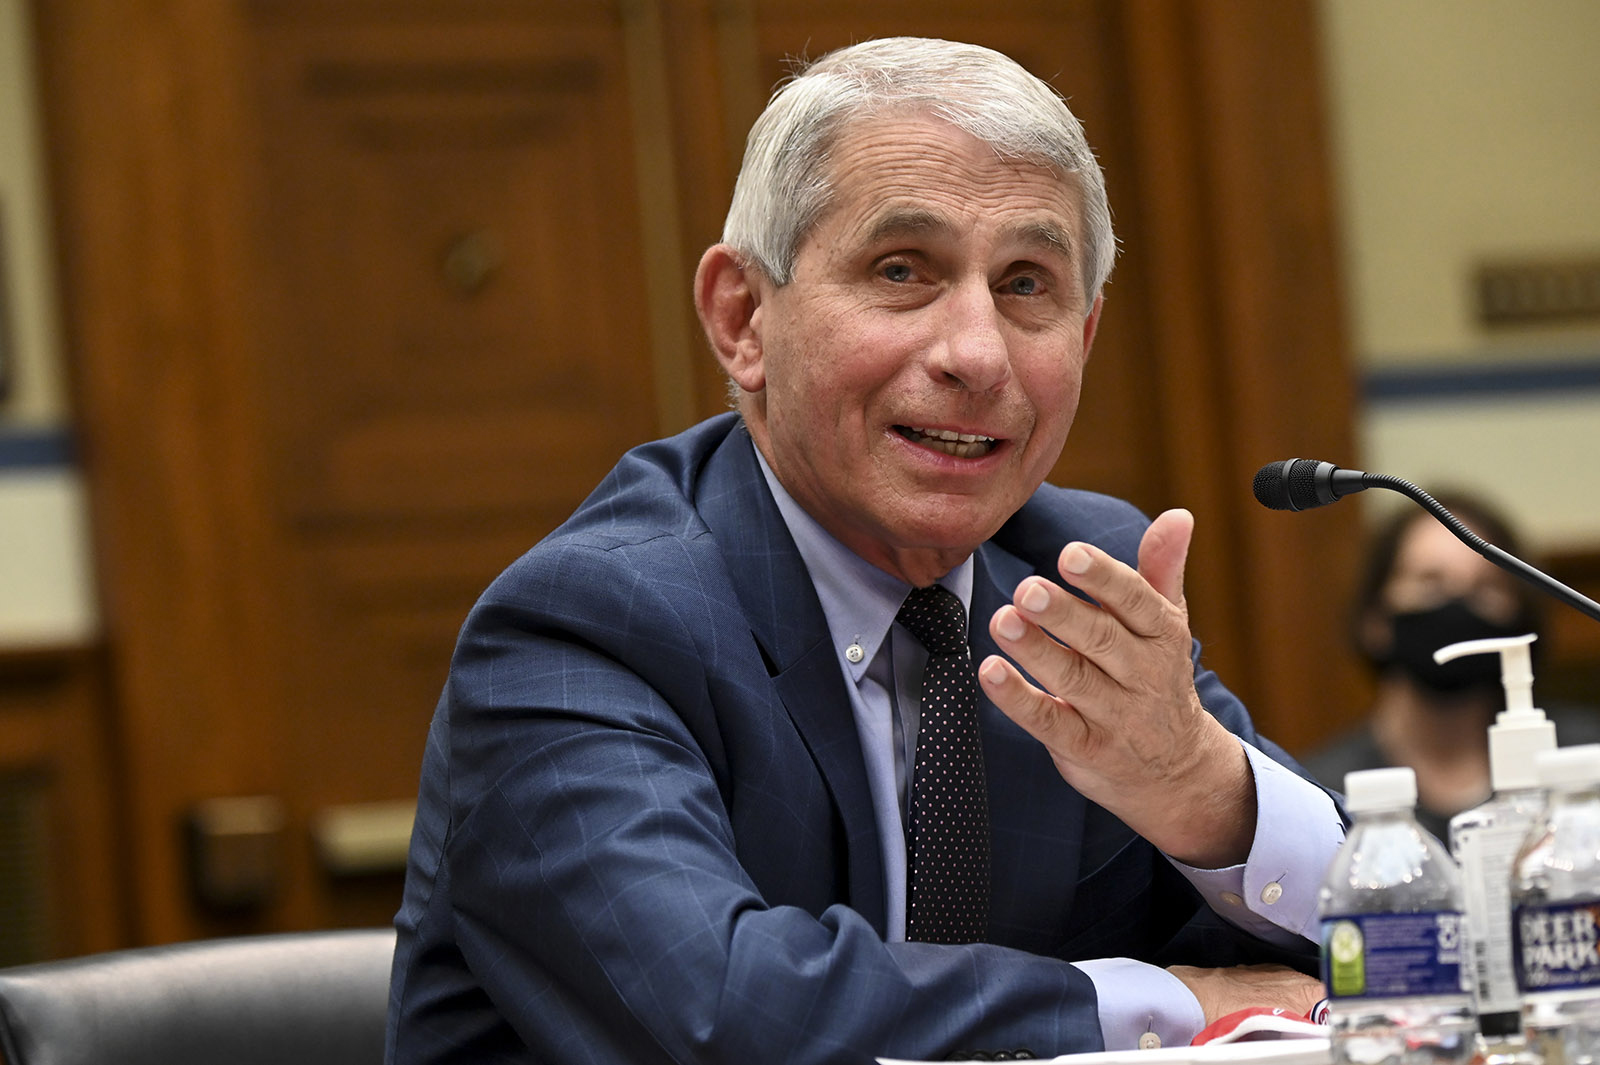 In this July 31 file photo, Dr. Anthony Fauci testifies during a House Select Subcommittee on the Coronavirus Crisis hearing on July 31, in Washington.